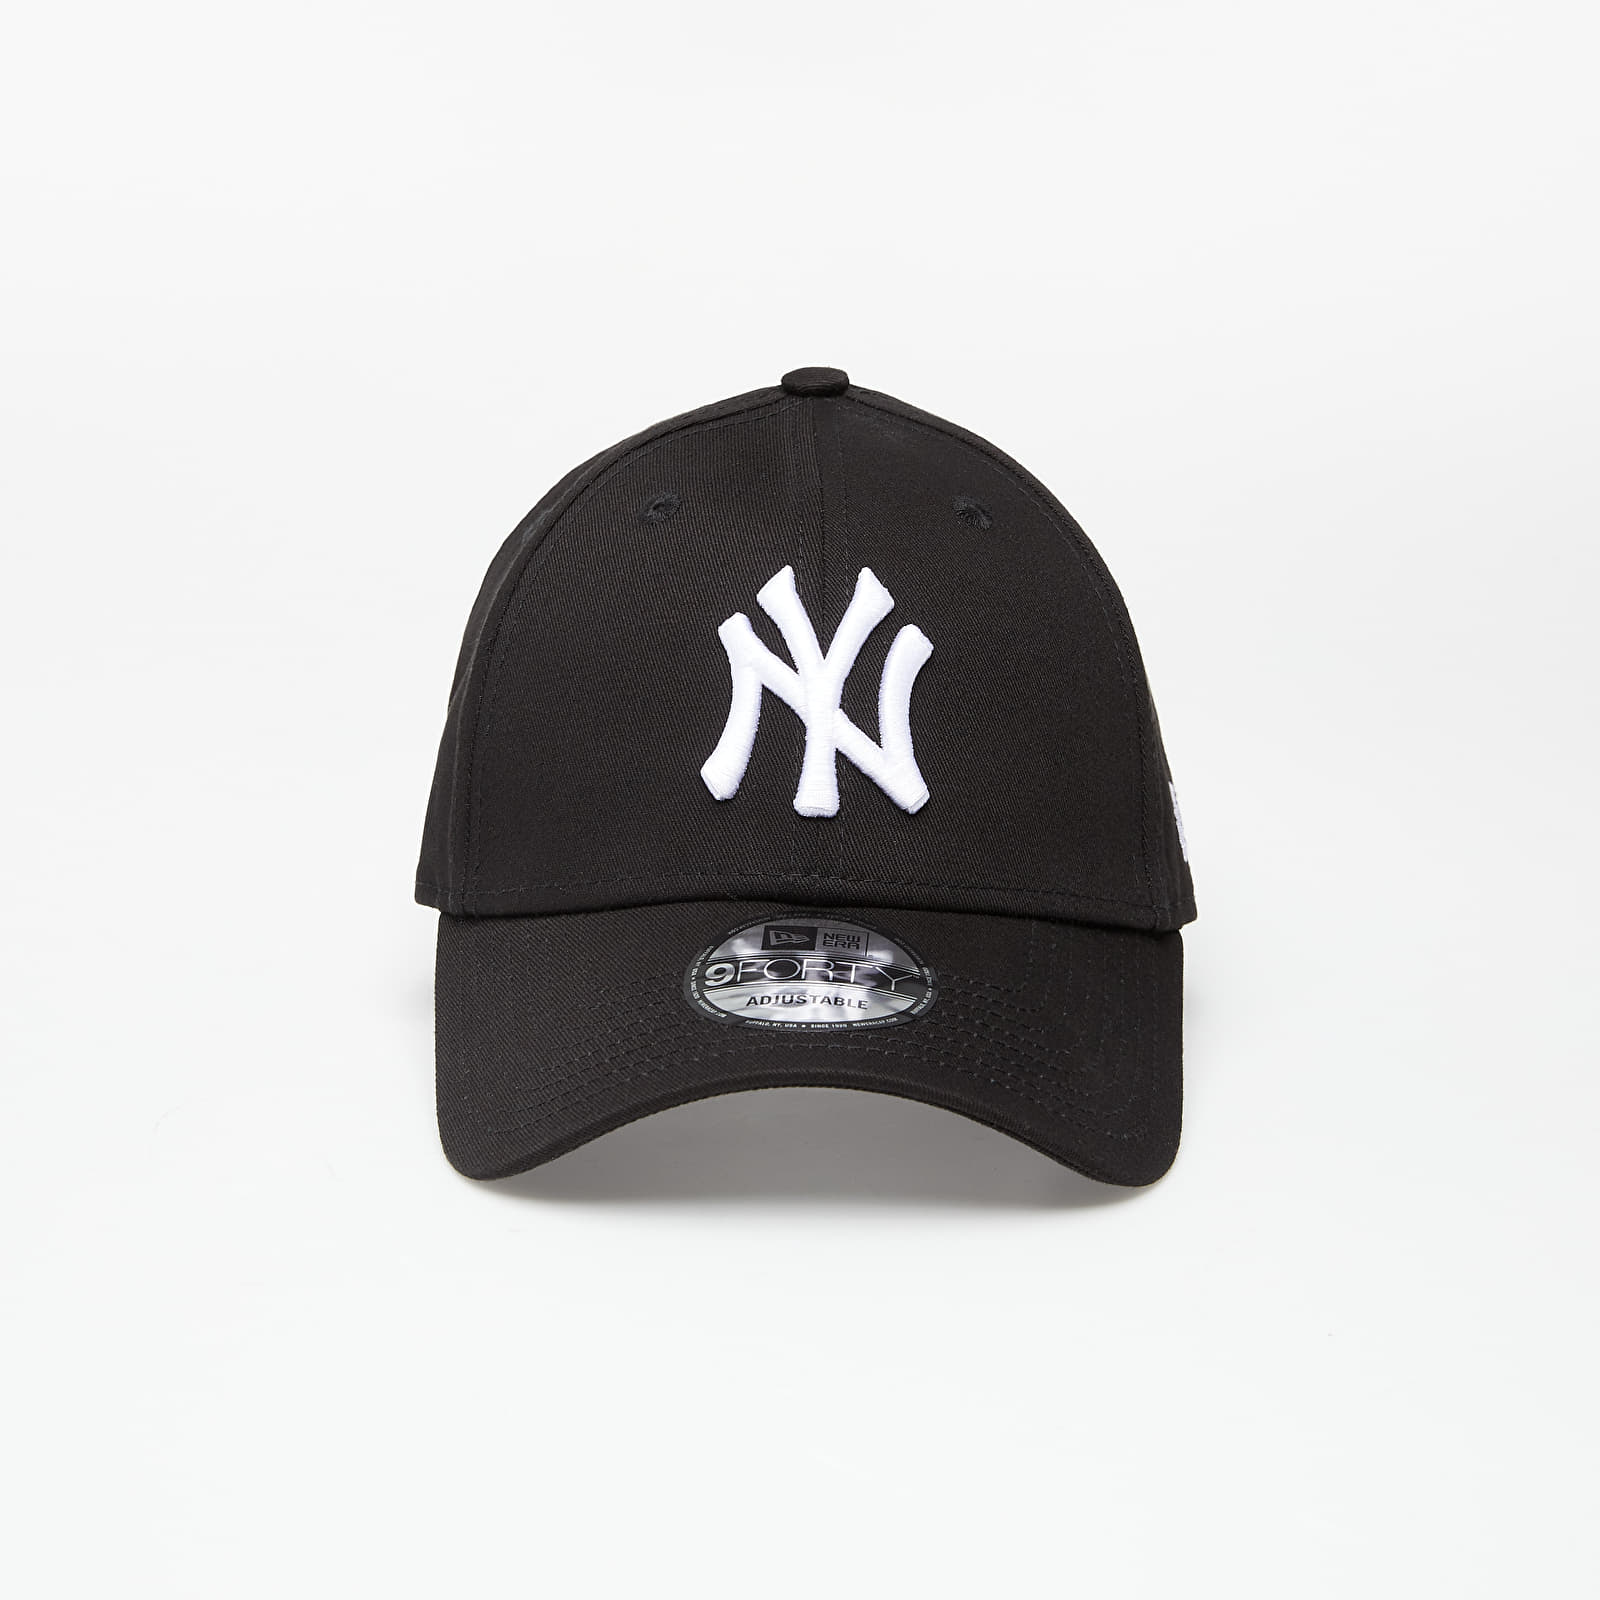 Šilterice New Era Cap 9Forty Mlb League Basic New York Yankees Black/ White